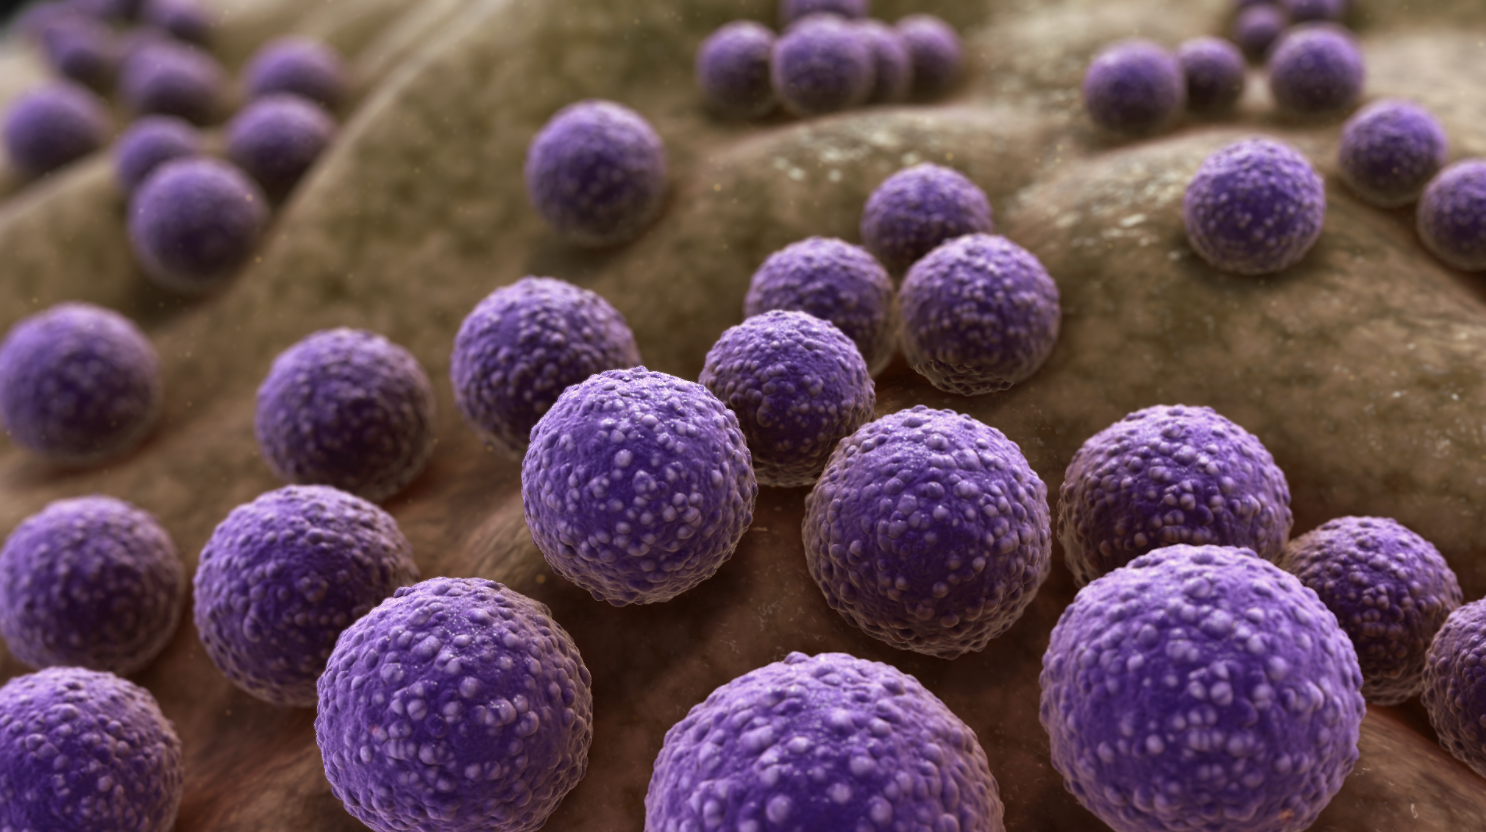 Antibiotic resistance: How to prevent the next public health emergency